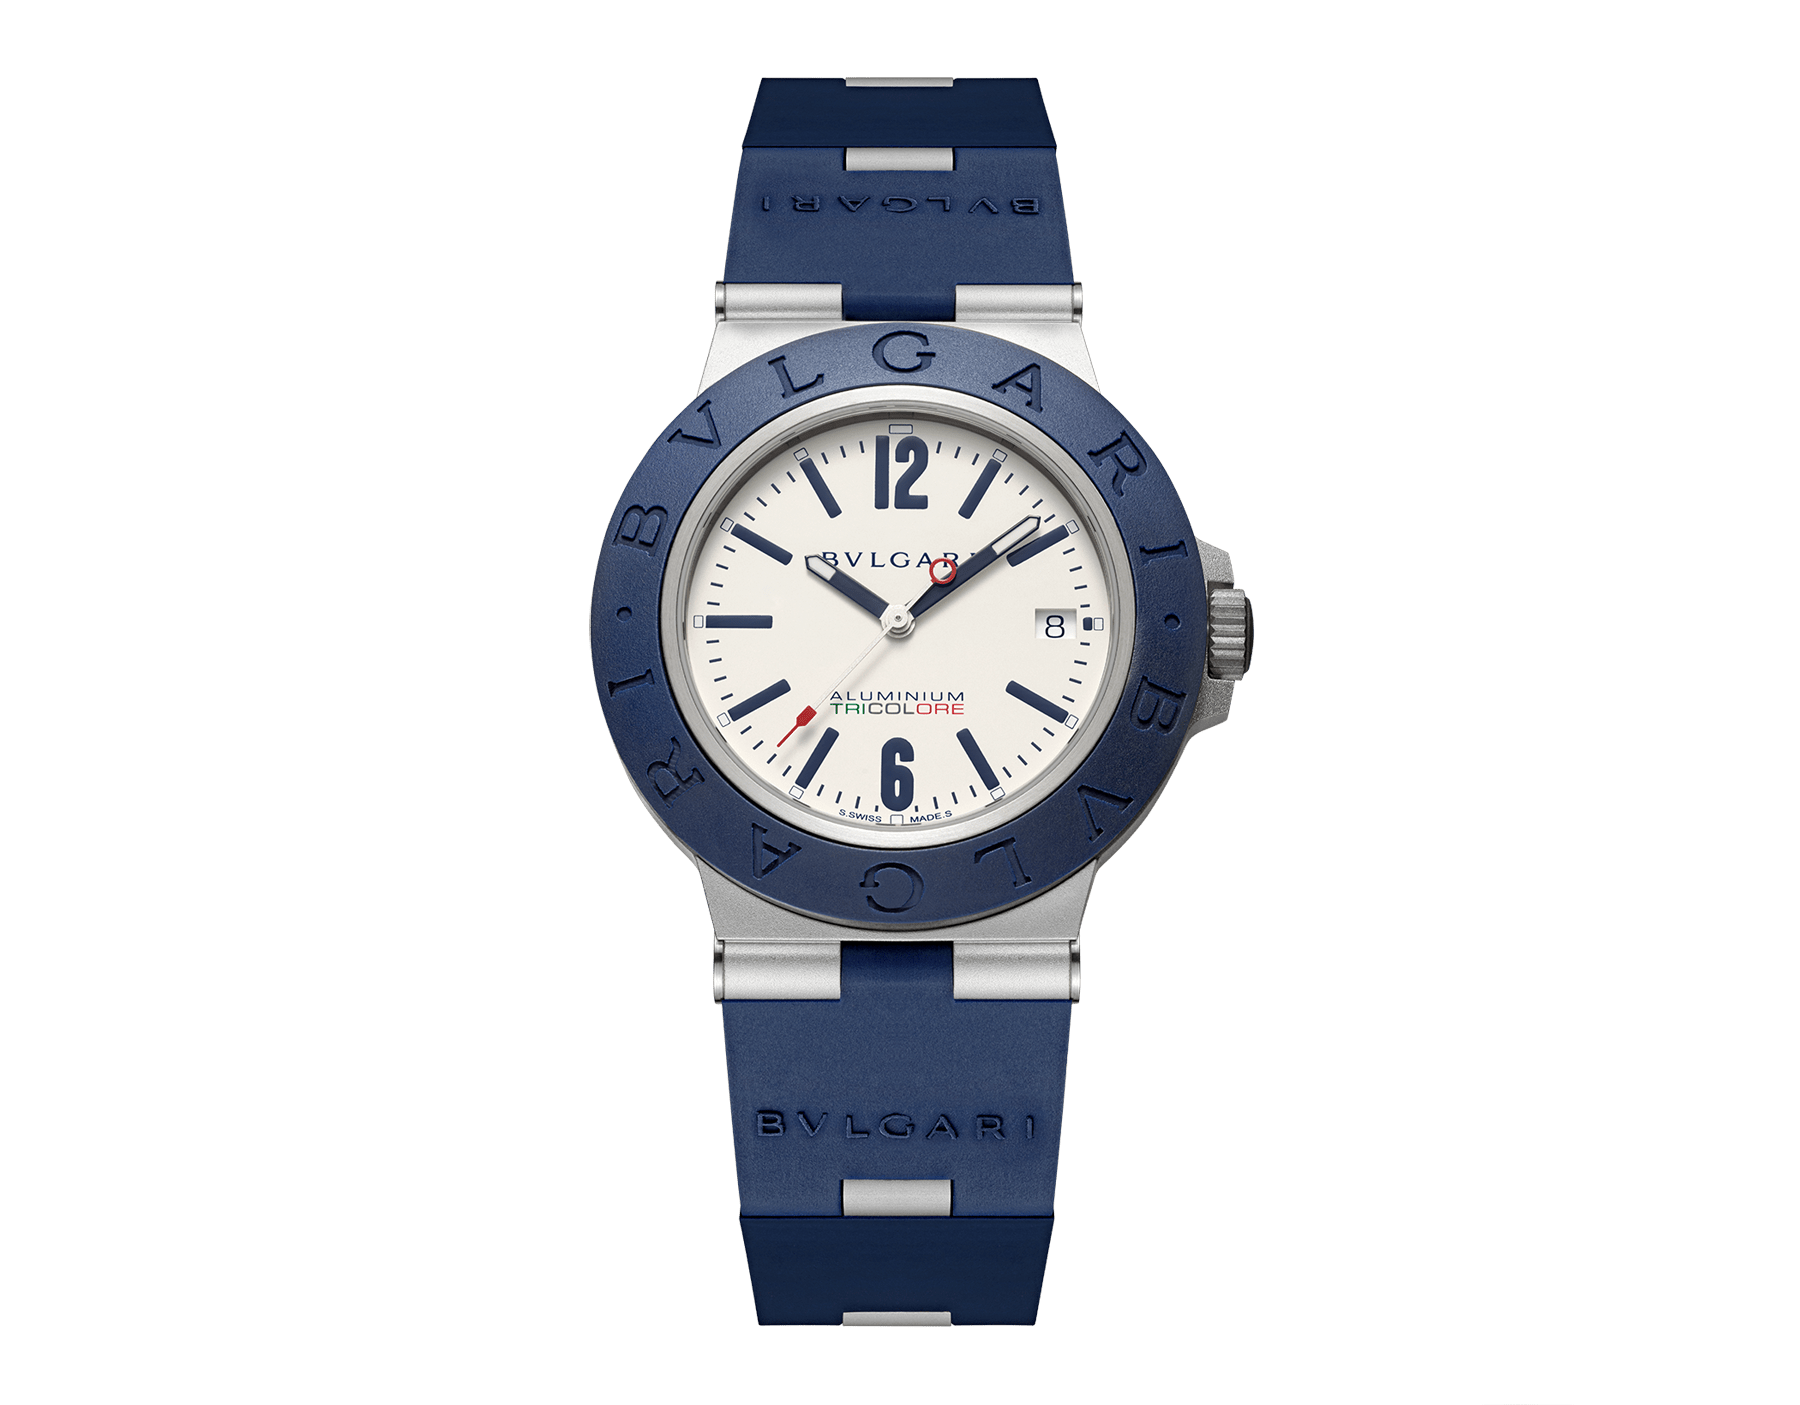 Bvlgari Aluminium Tricolore watch with mechanical movement, automatic winding and date, 40 mm aluminum and titanium case, blue rubber bezel with BVLGARI BVLGARI engraving, warm gray dial with special TRICOLORE logo, and blue rubber bracelet. Water-resistant up to 100 meters. Limited Edition 103514 image 1